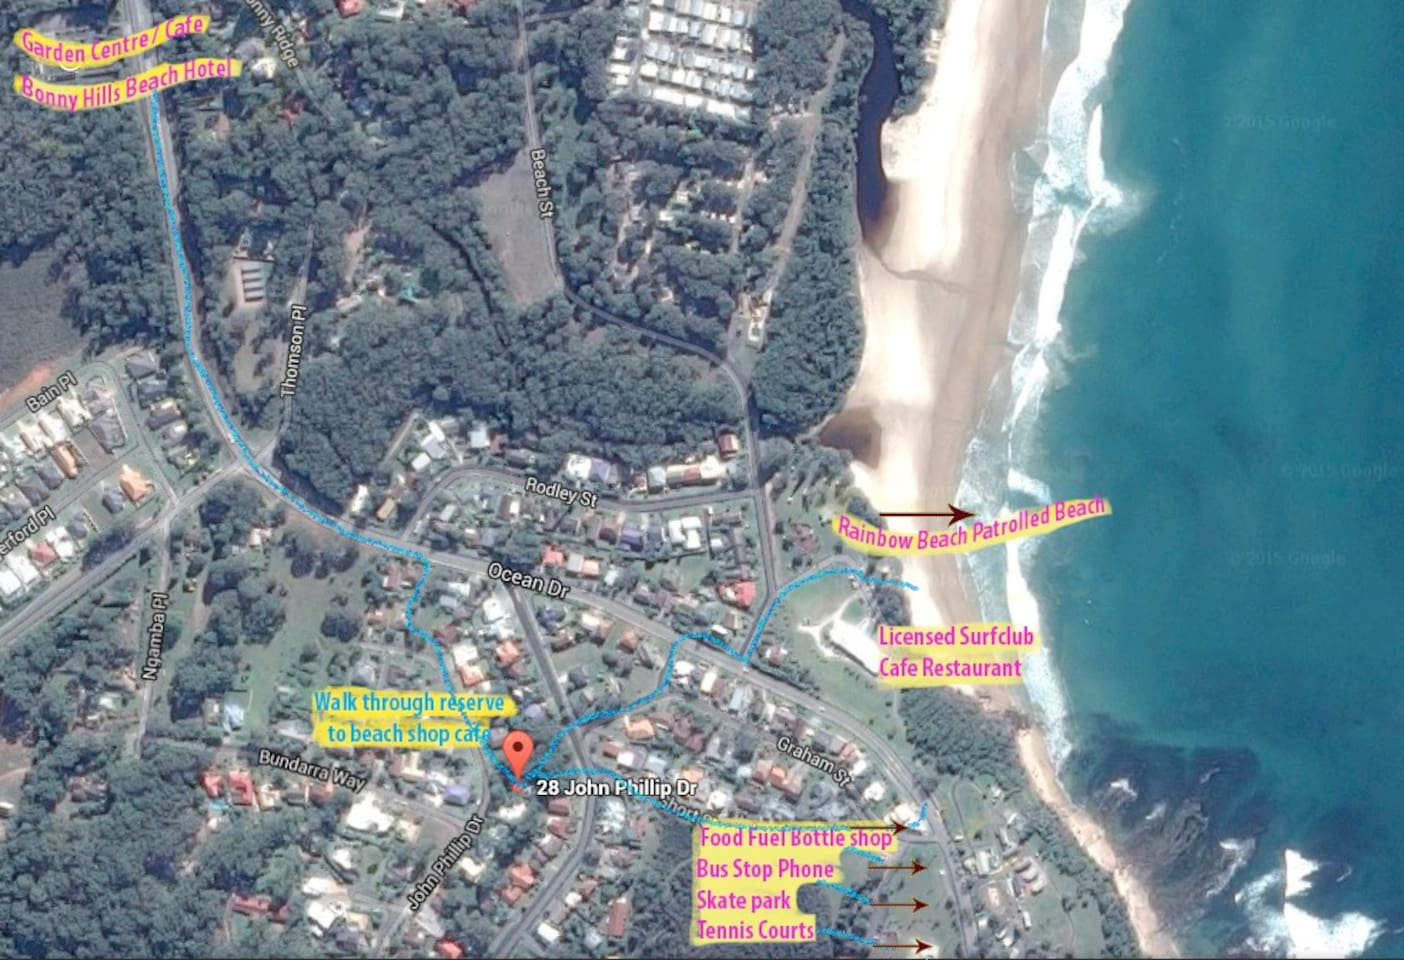 Map showing easy walking access to beach, shop and cafe.